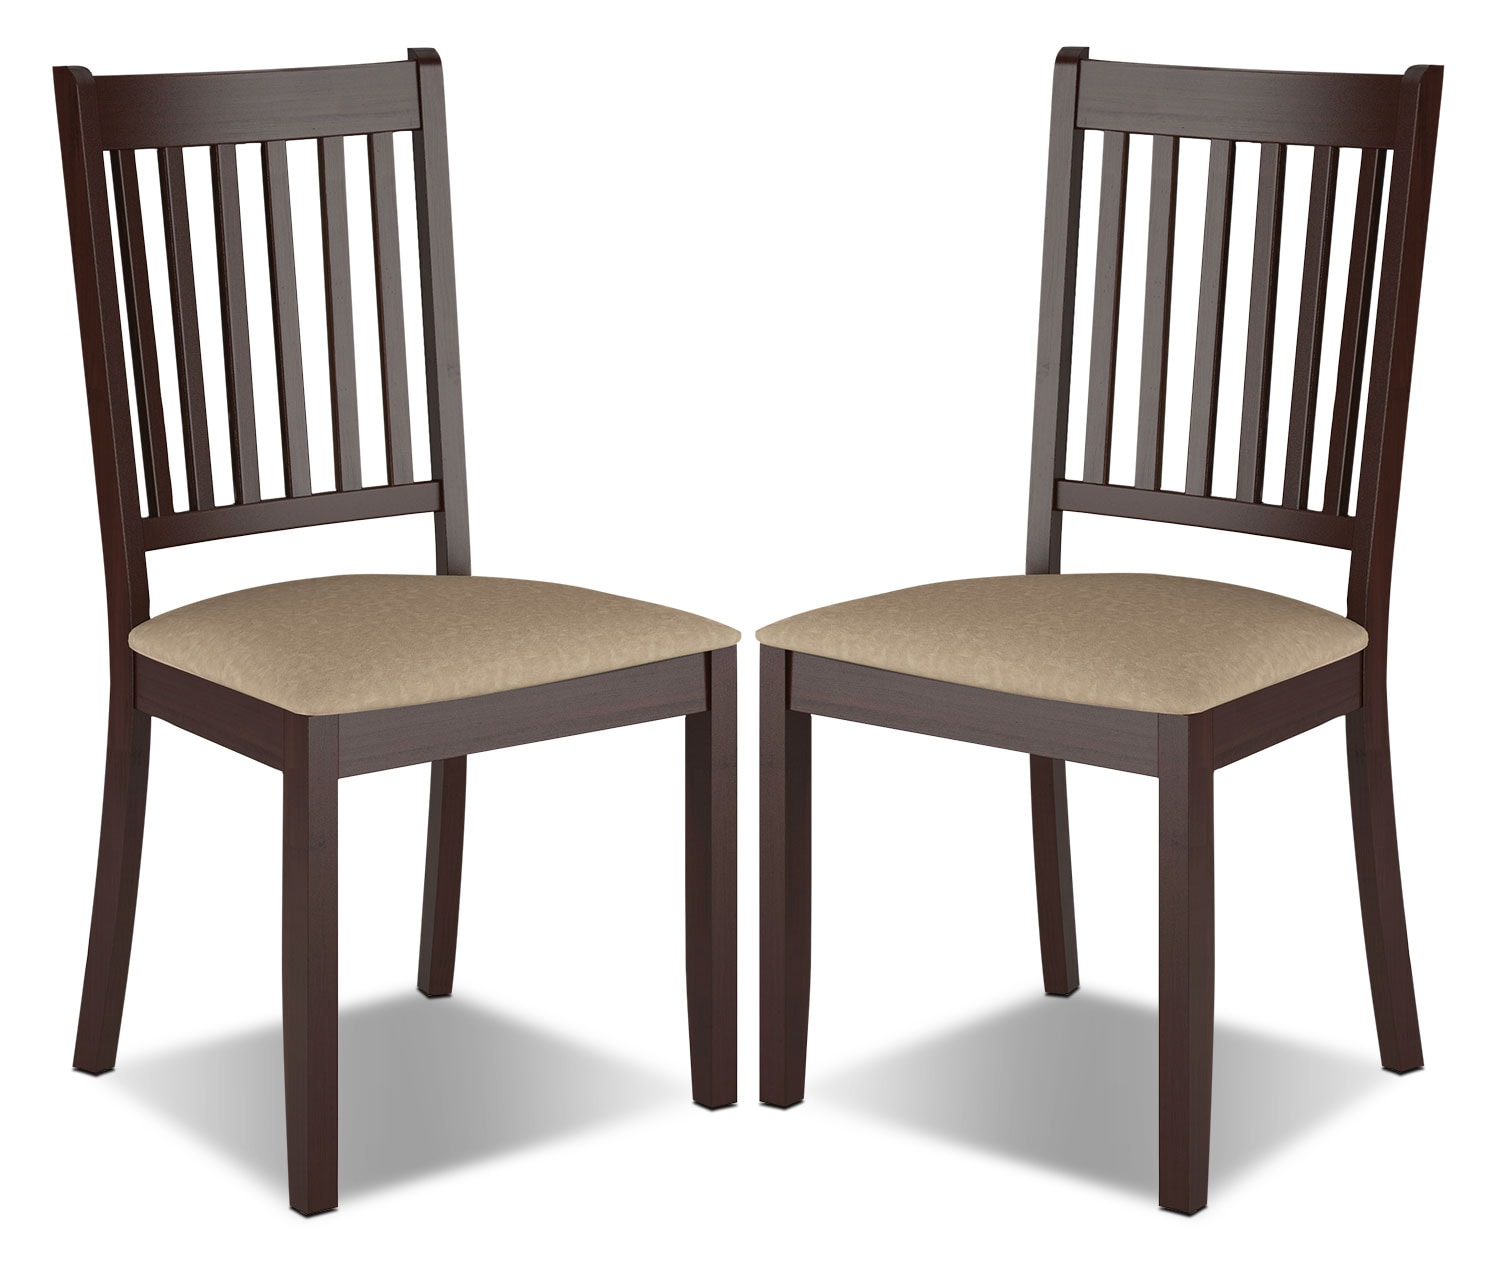 Dining Room Furniture - Atwood Dining Chair with Microfibre Seat, Set of 2 – Beige